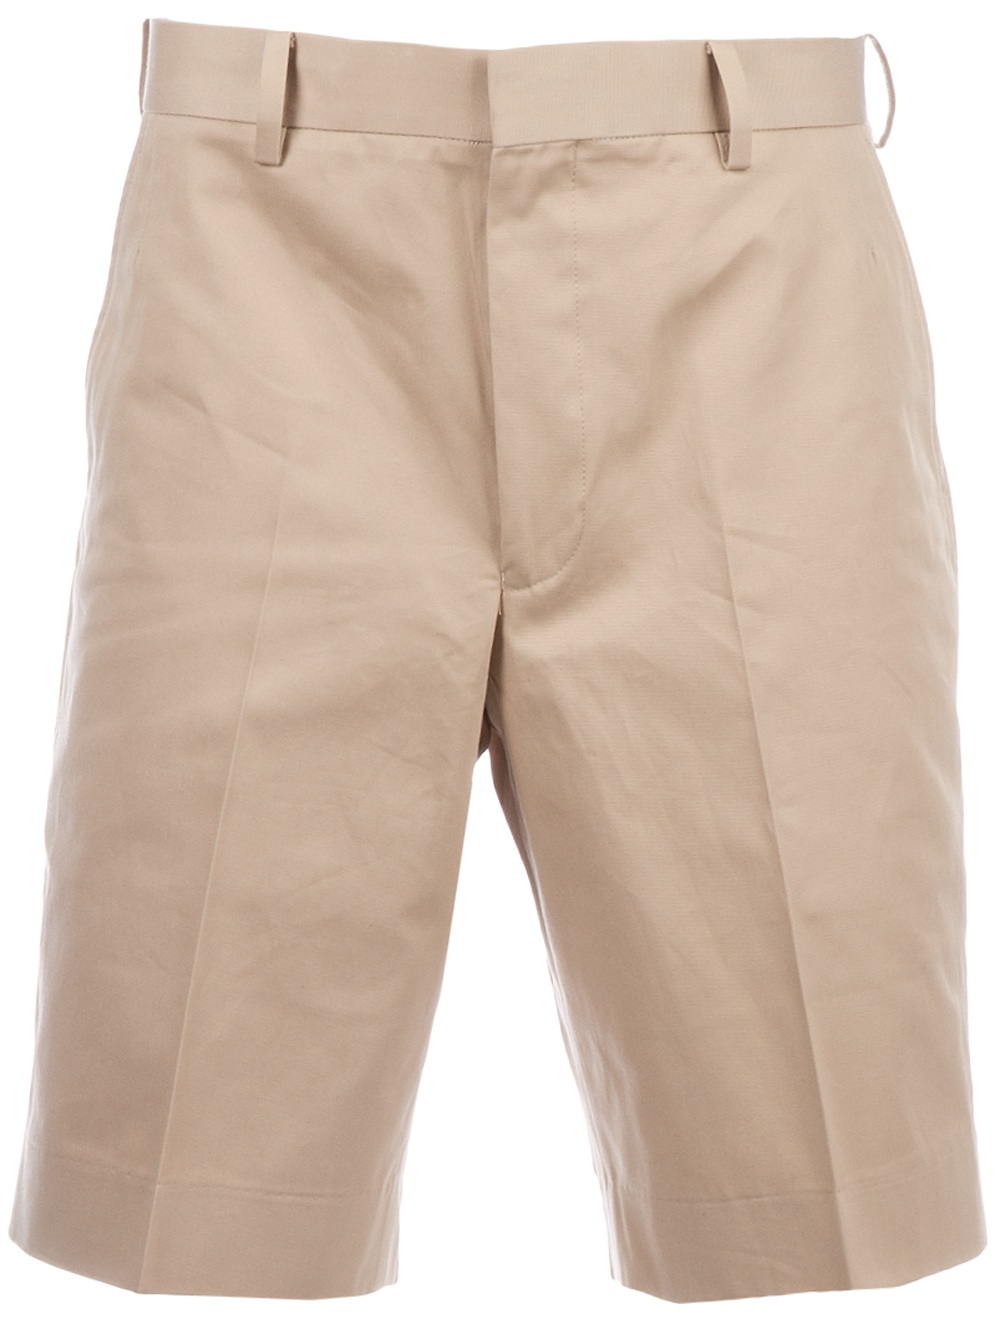 FREE SHIPPING AVAILABLE! Shop cheswick-stand.tk and save on Chino Shorts Beige Shorts.